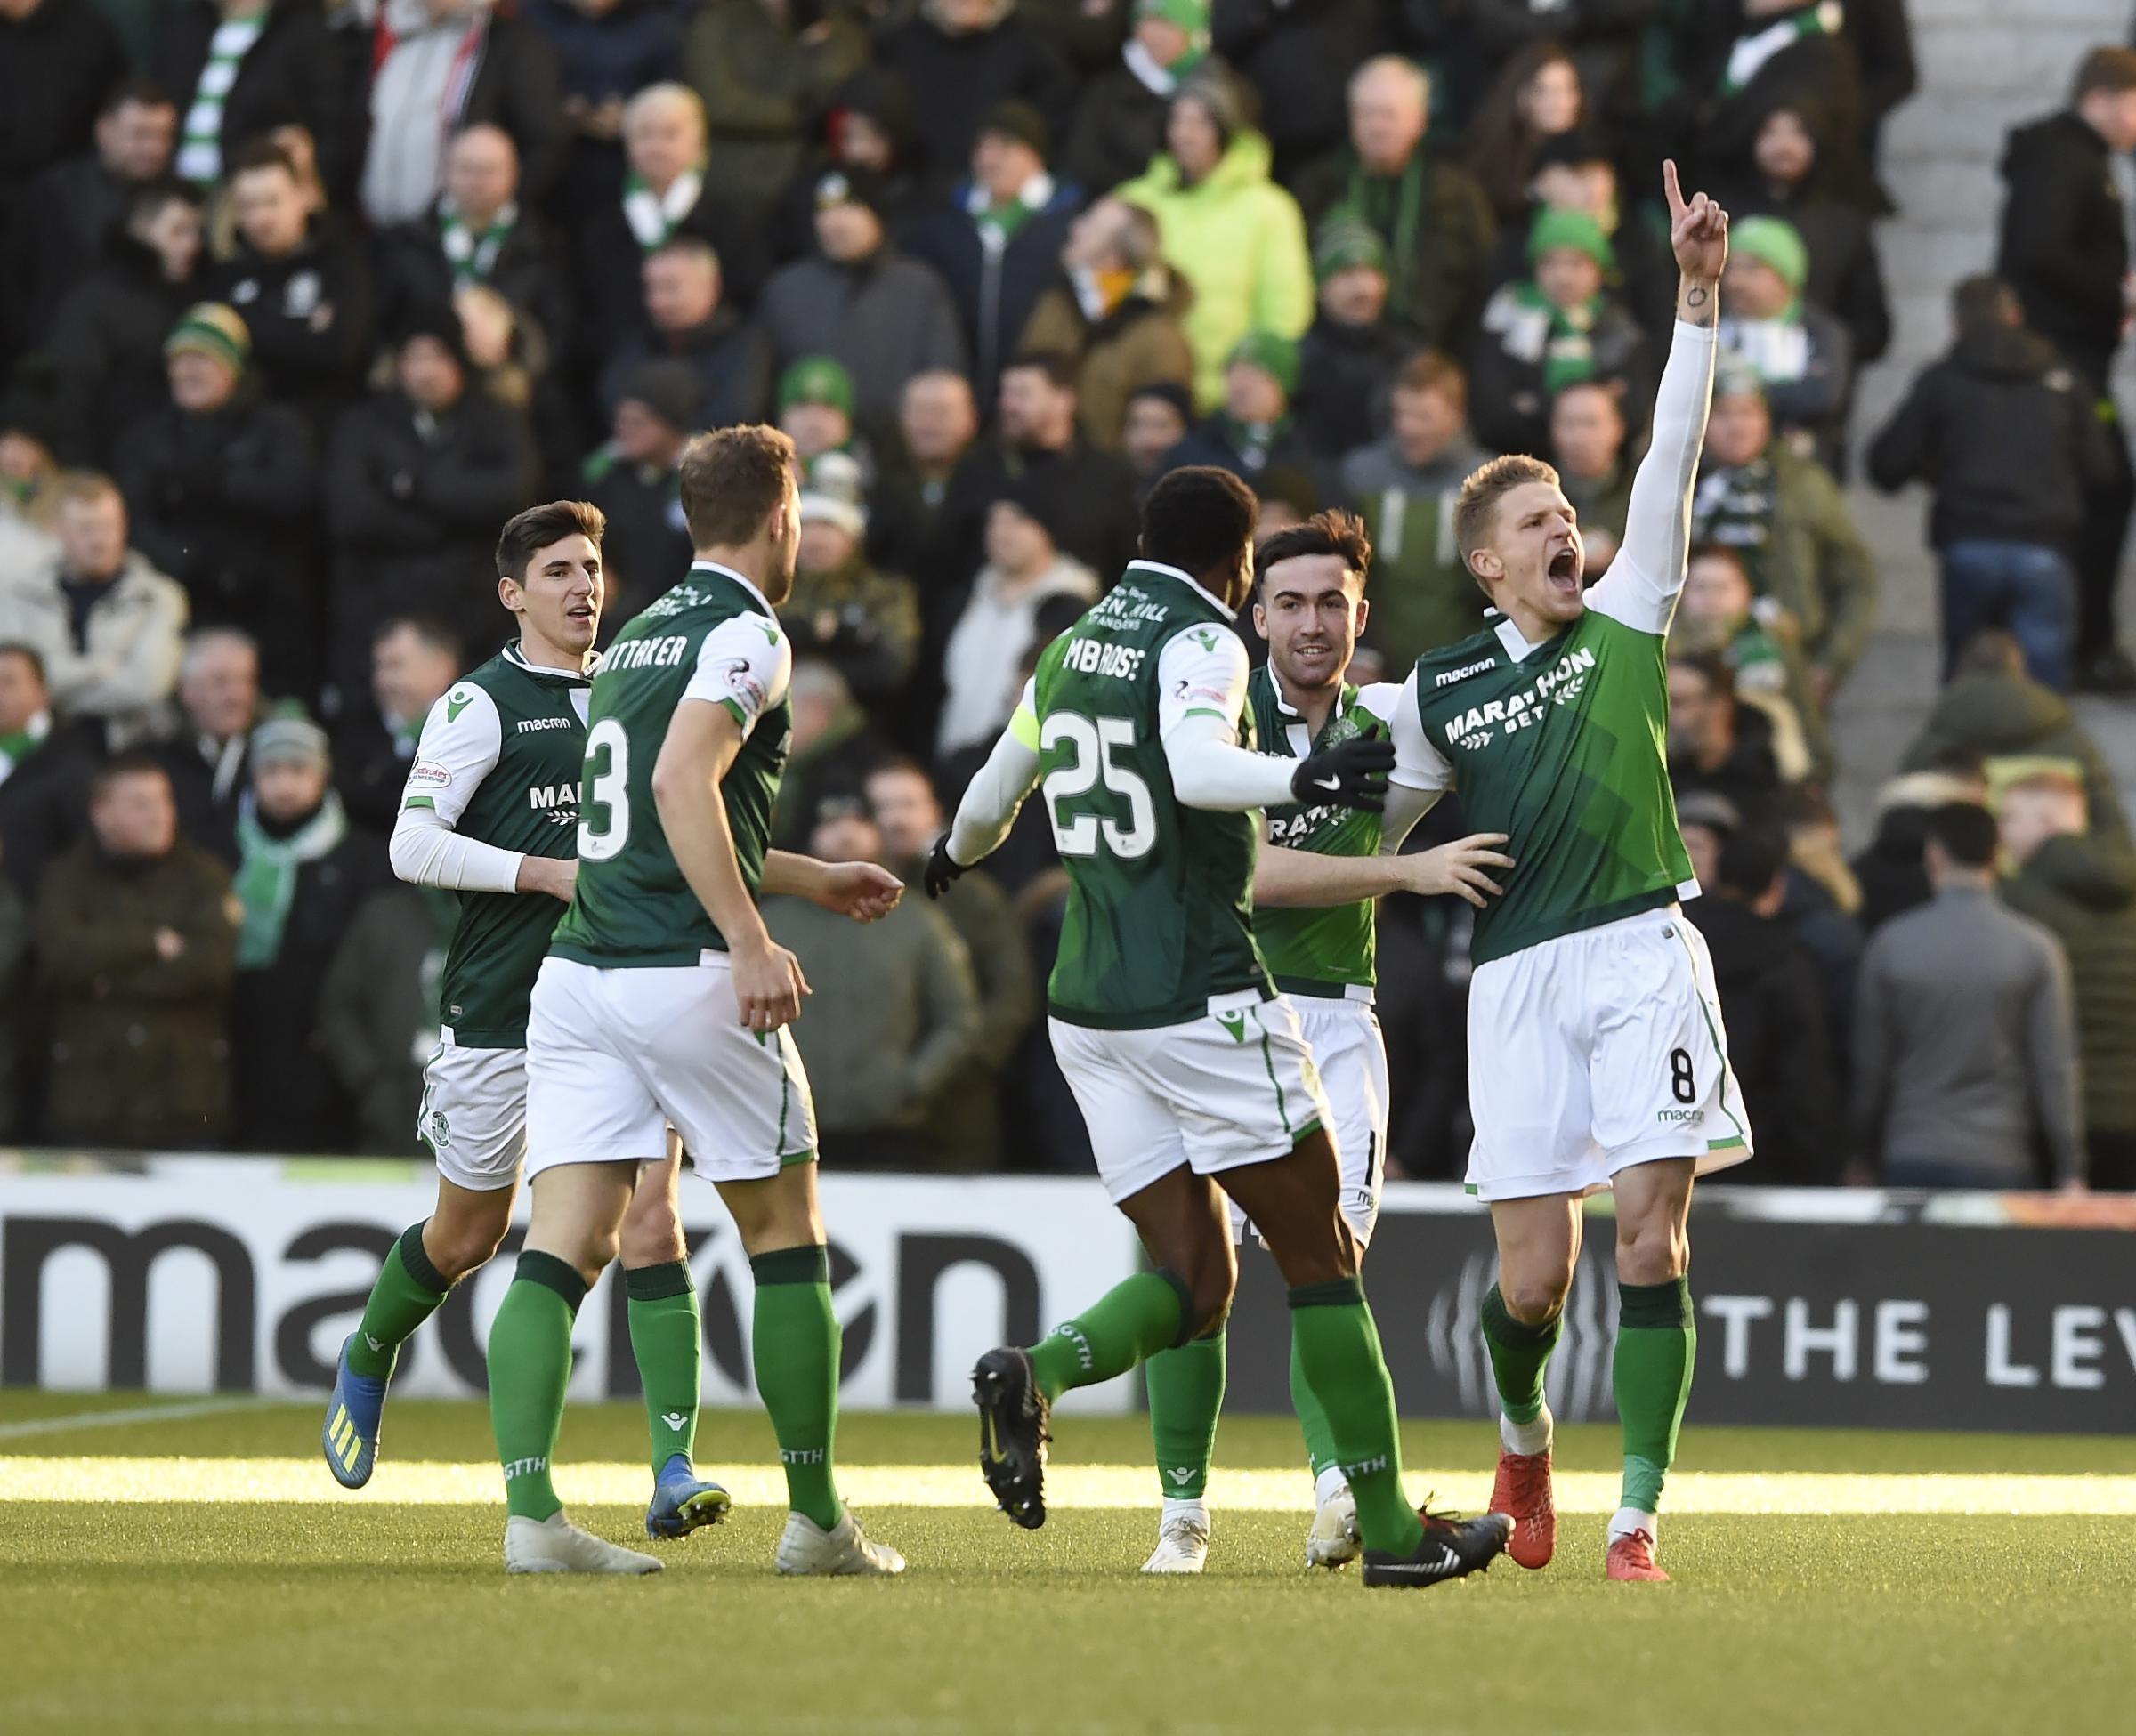 Hibernian's Vykintas Slivka (8) celebrates scoring his side's first goal of the game with team-mates Efe Ambrose (25) Stevie Mallan (14) and Steven Whittaker (3) during the Ladbrokes Scottish Premiership match at Easter Road, Edinburgh. PRESS ASSO